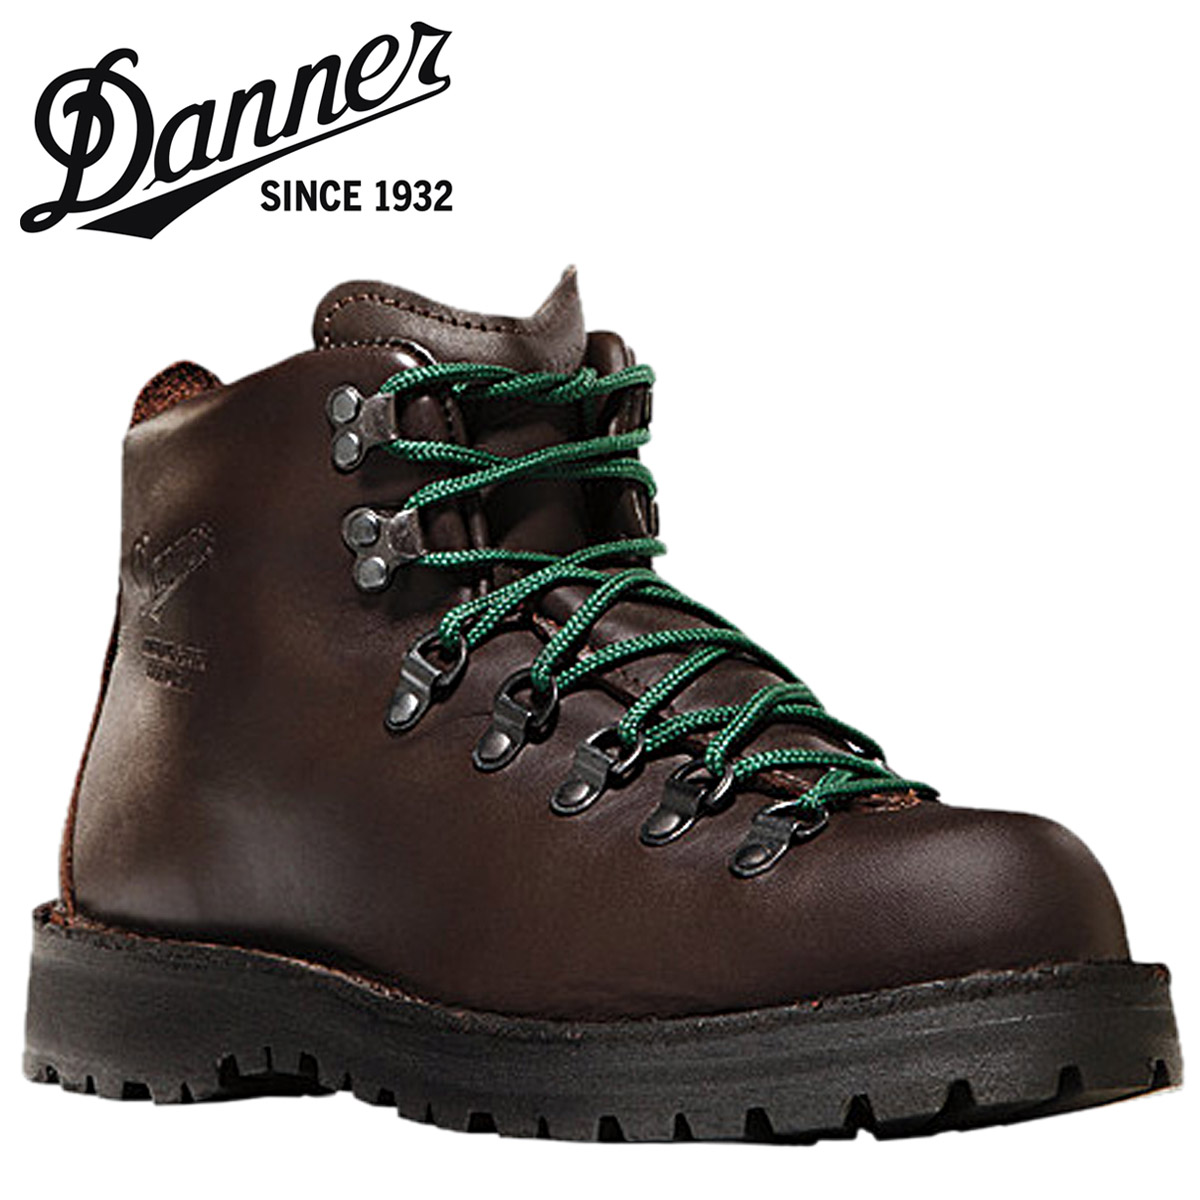 Sneak Online Shop Rakuten Global Market Danner Danner